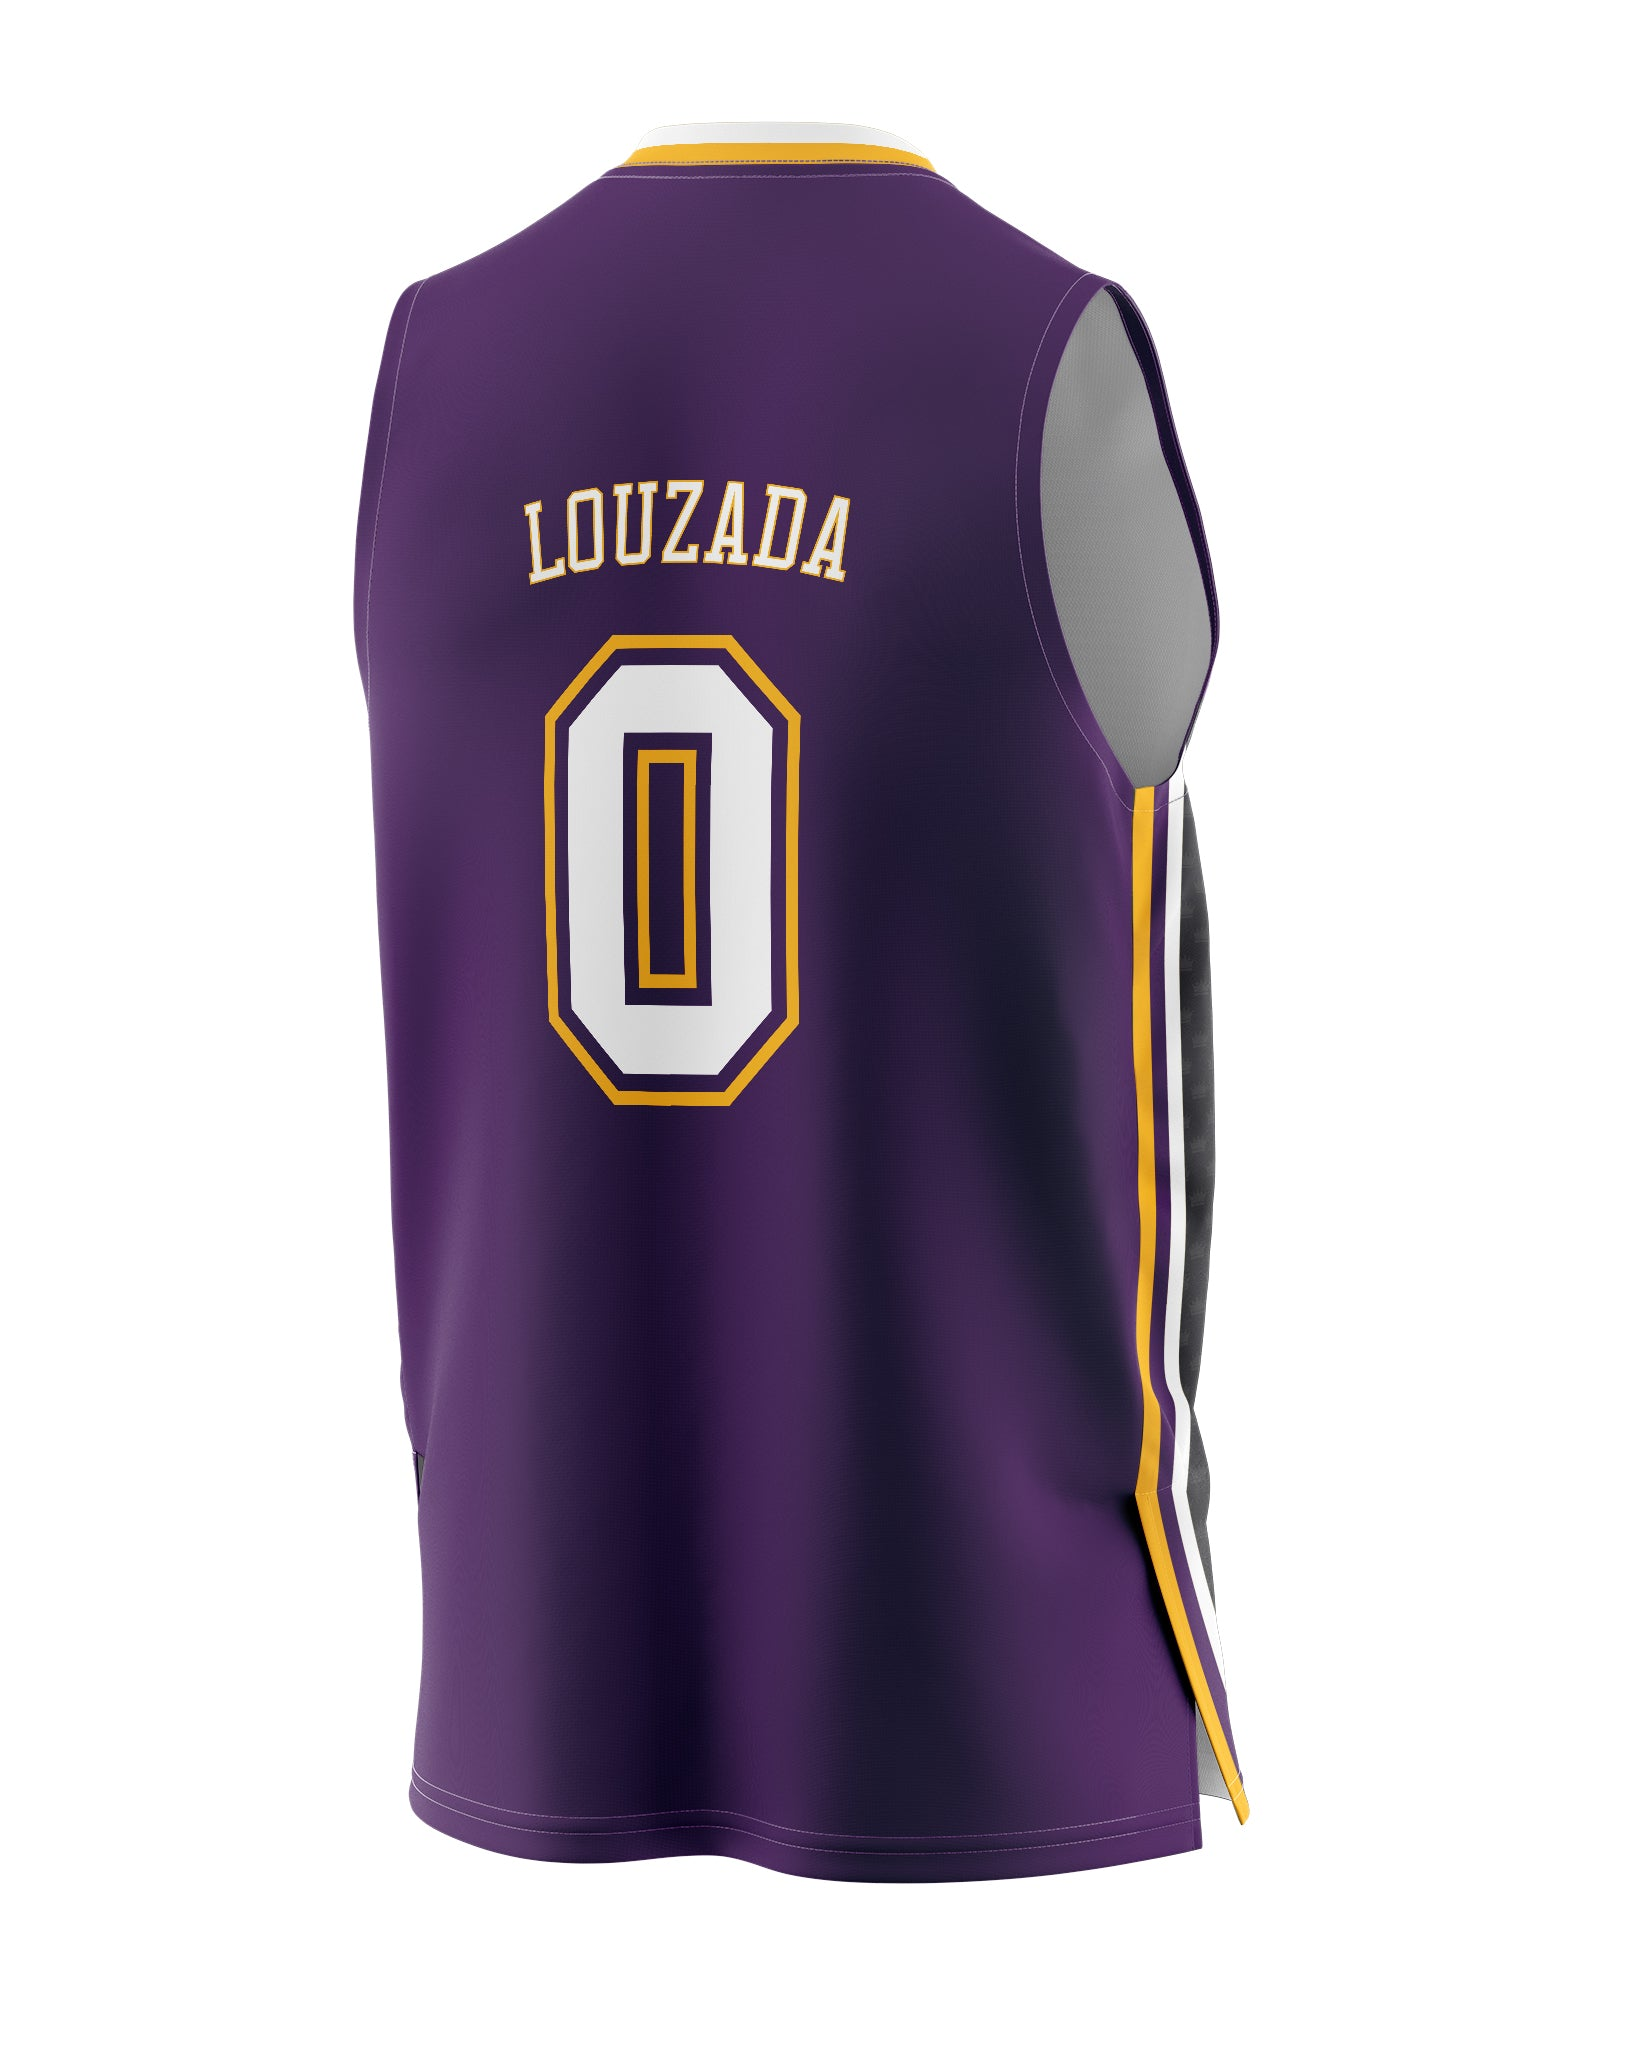 Sydney Kings 20/21 Authentic Home Jersey - Didi Louzada